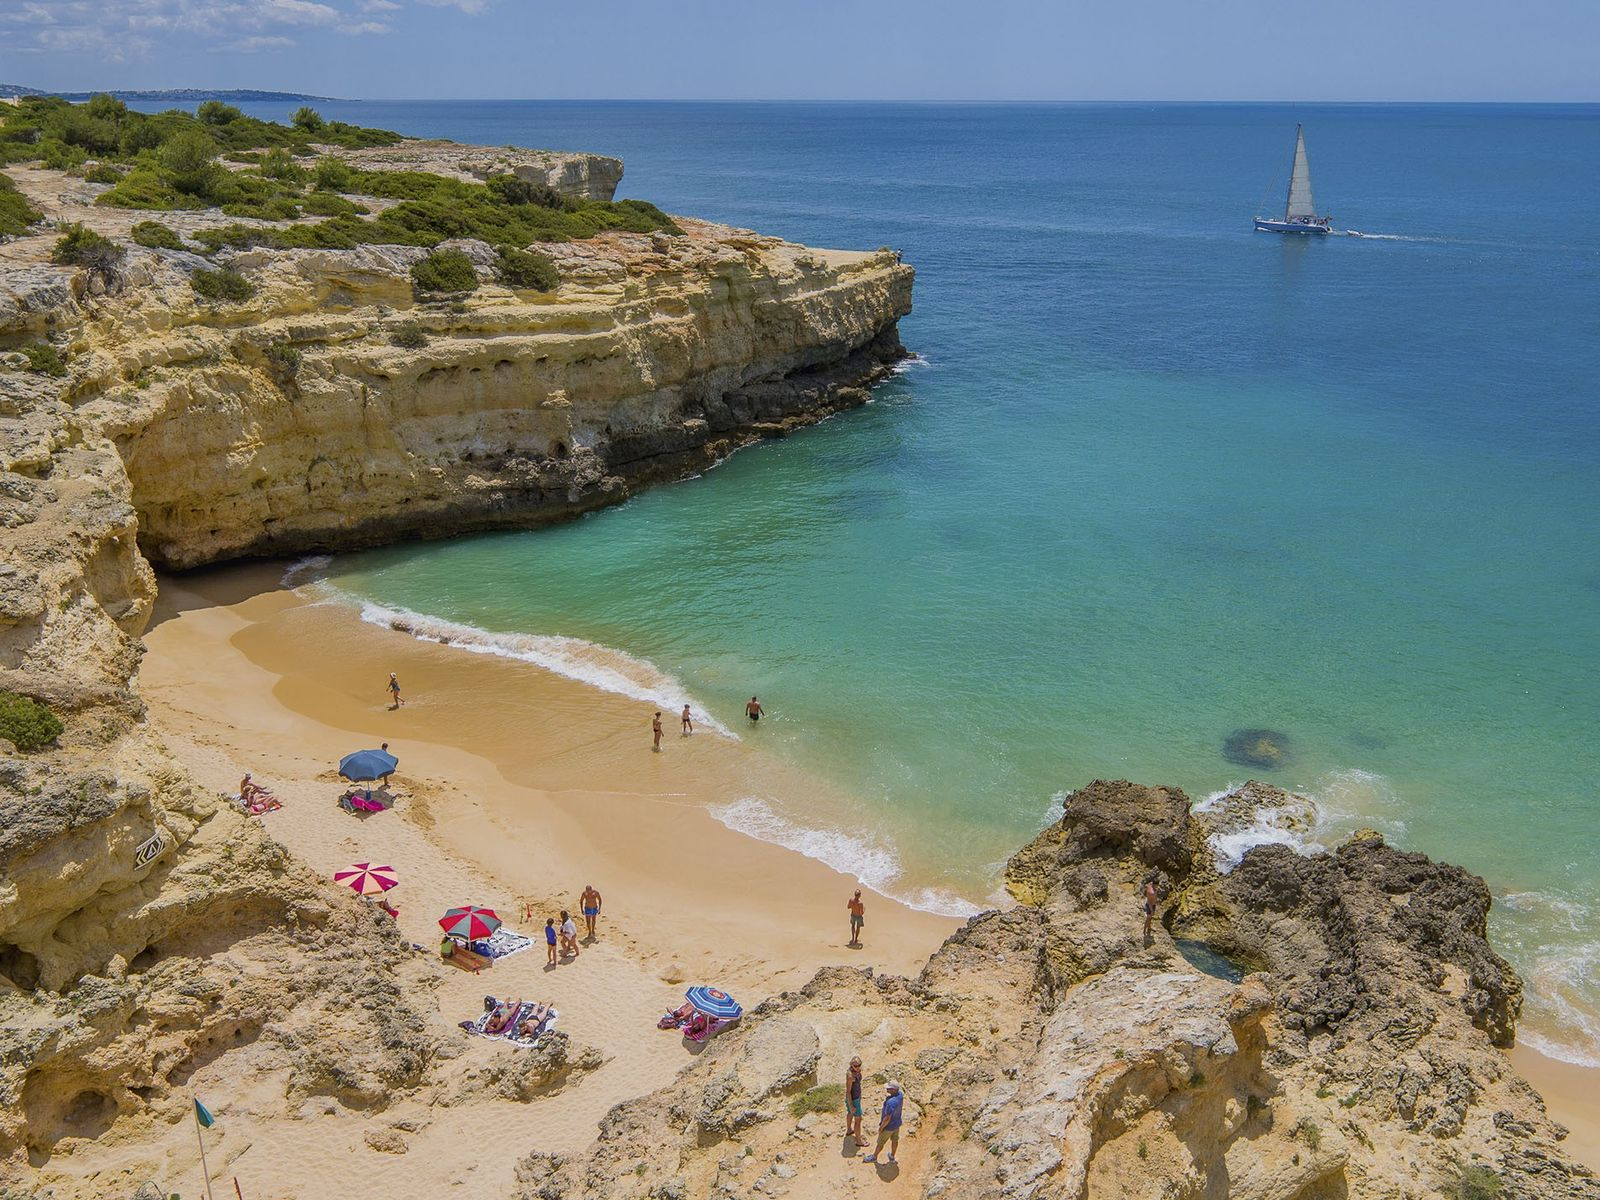 Family travel: What to do in the Algarve